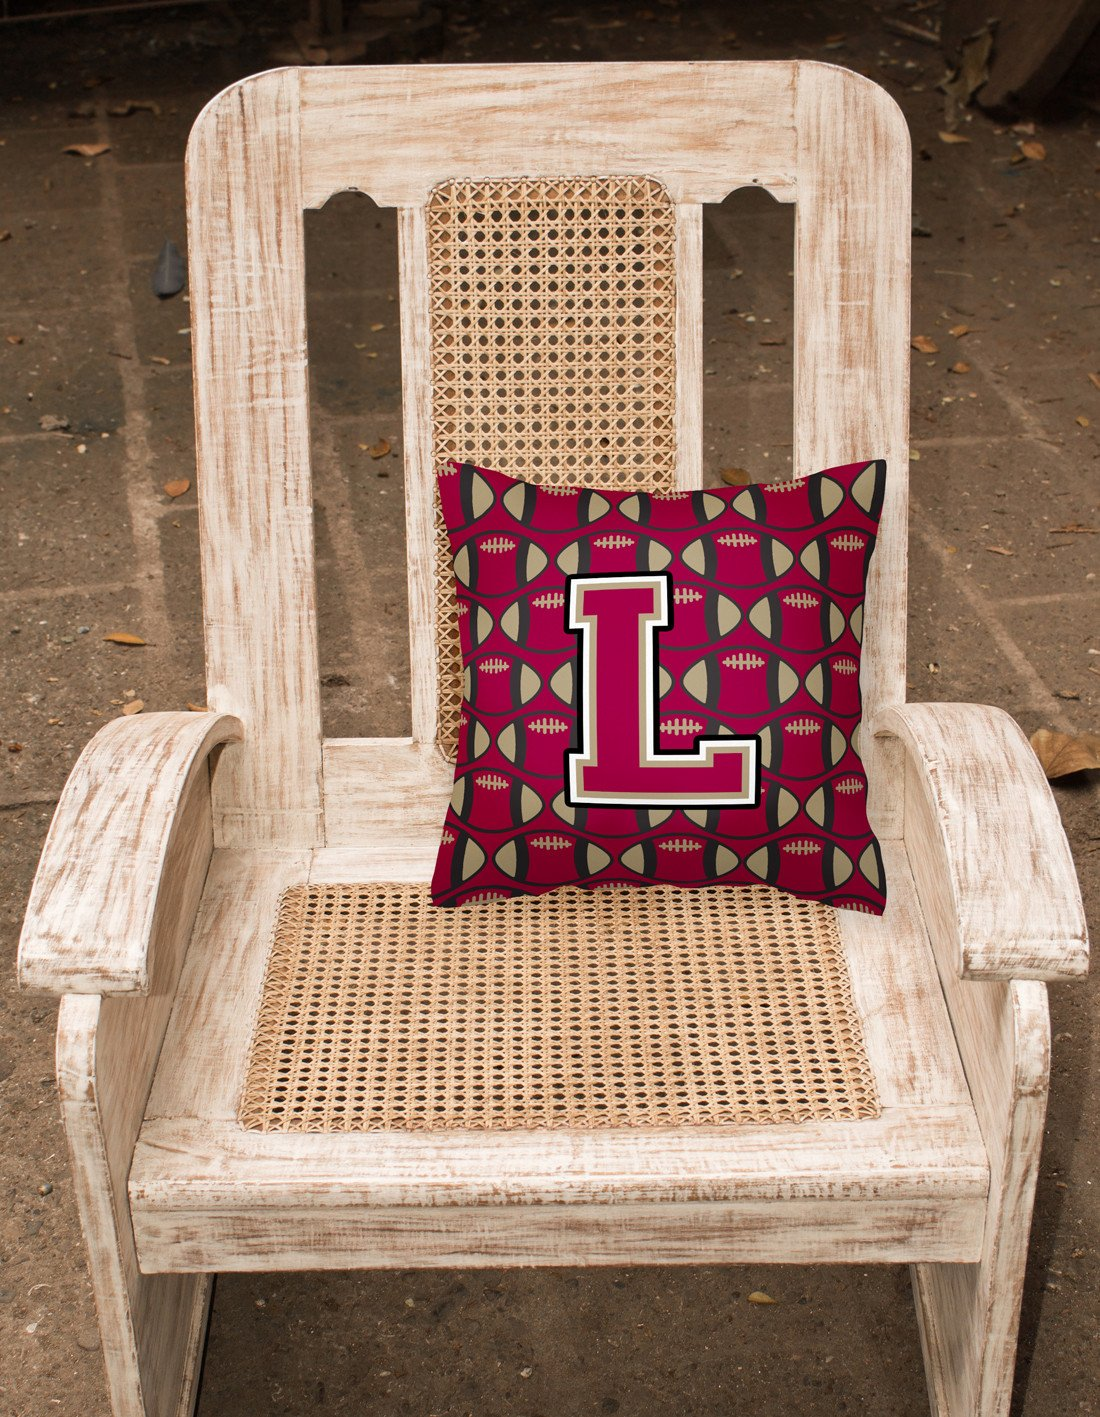 Letter L Football Garnet and Gold Fabric Decorative Pillow CJ1078-LPW1414 by Caroline's Treasures